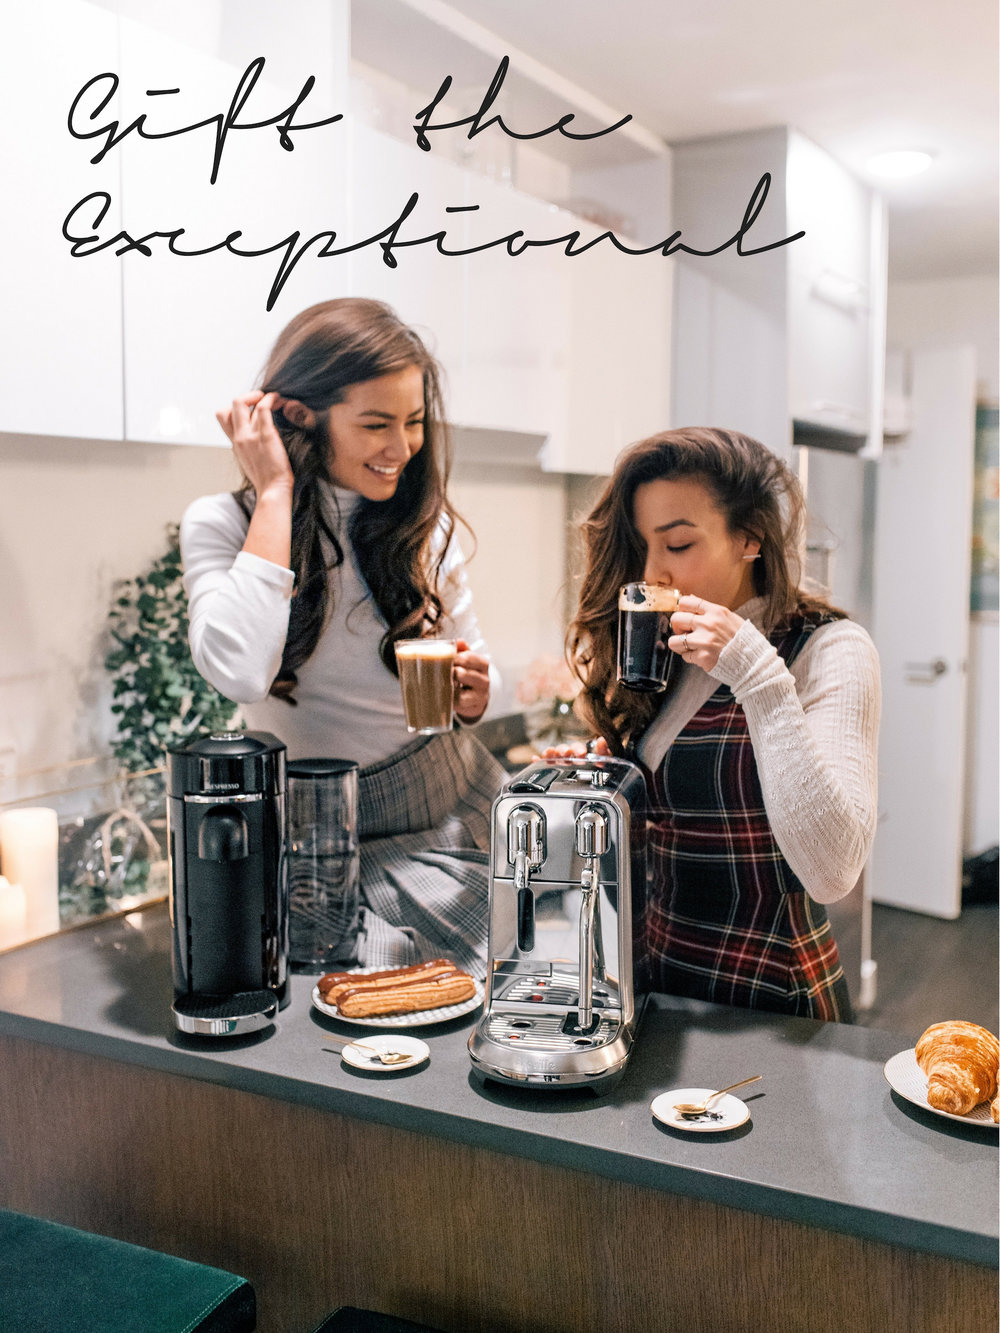 The+Bachelor+Caila+Quinn+and+Sharleen+Joynt+enjoying+Nespresso+Coffee+Machine+a+premium+holiday+gift+in+their+New+York+City+Kitchen.jpg